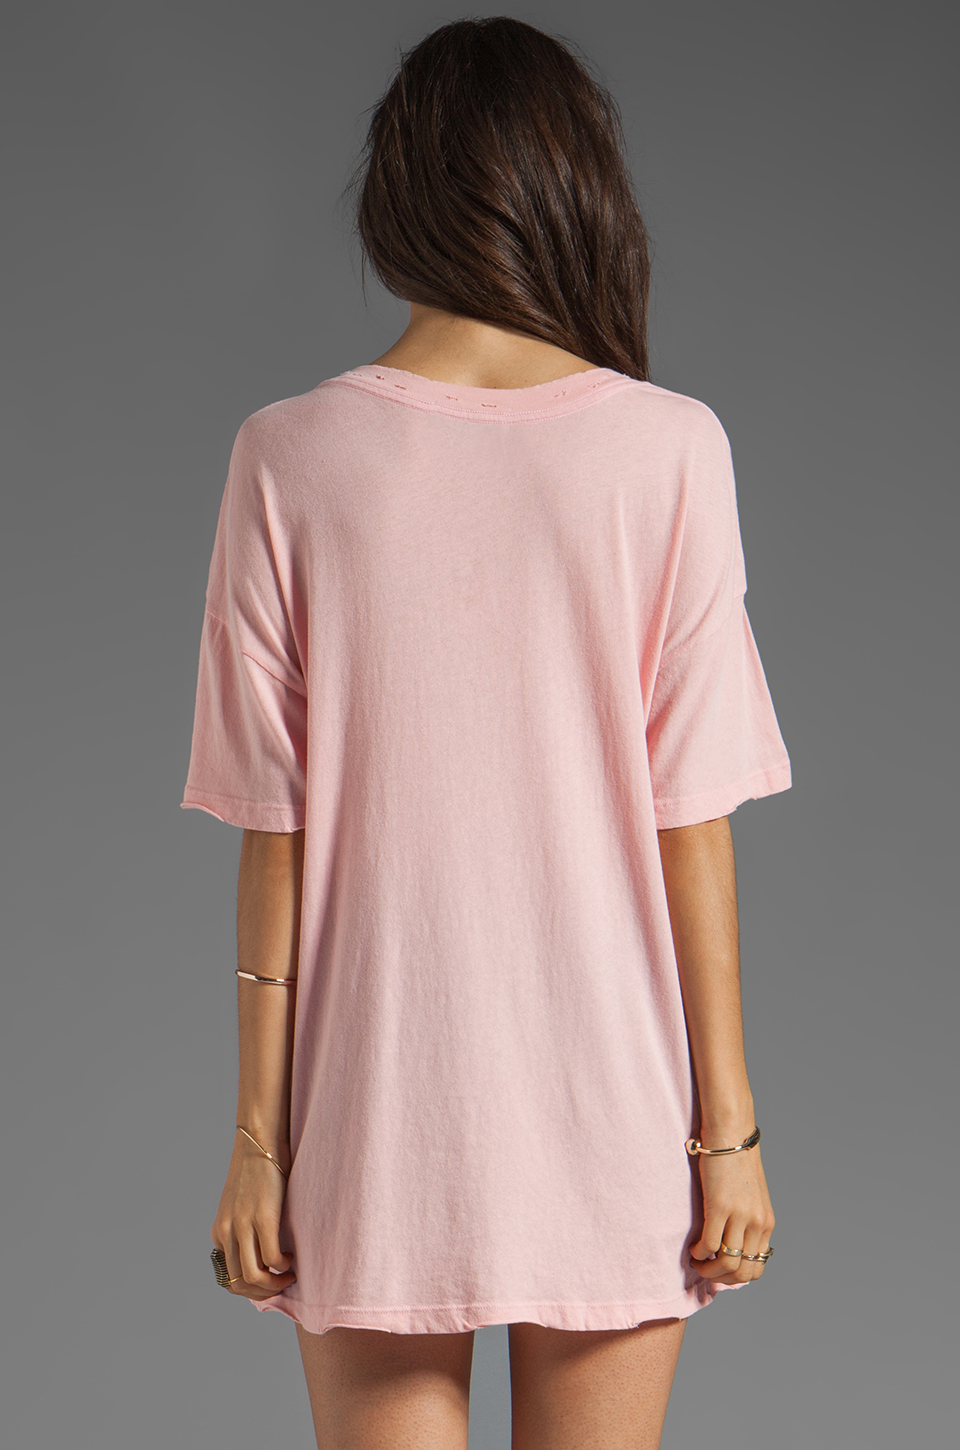 Wildfox Couture Georgia Peach Tee in Poodle Pink